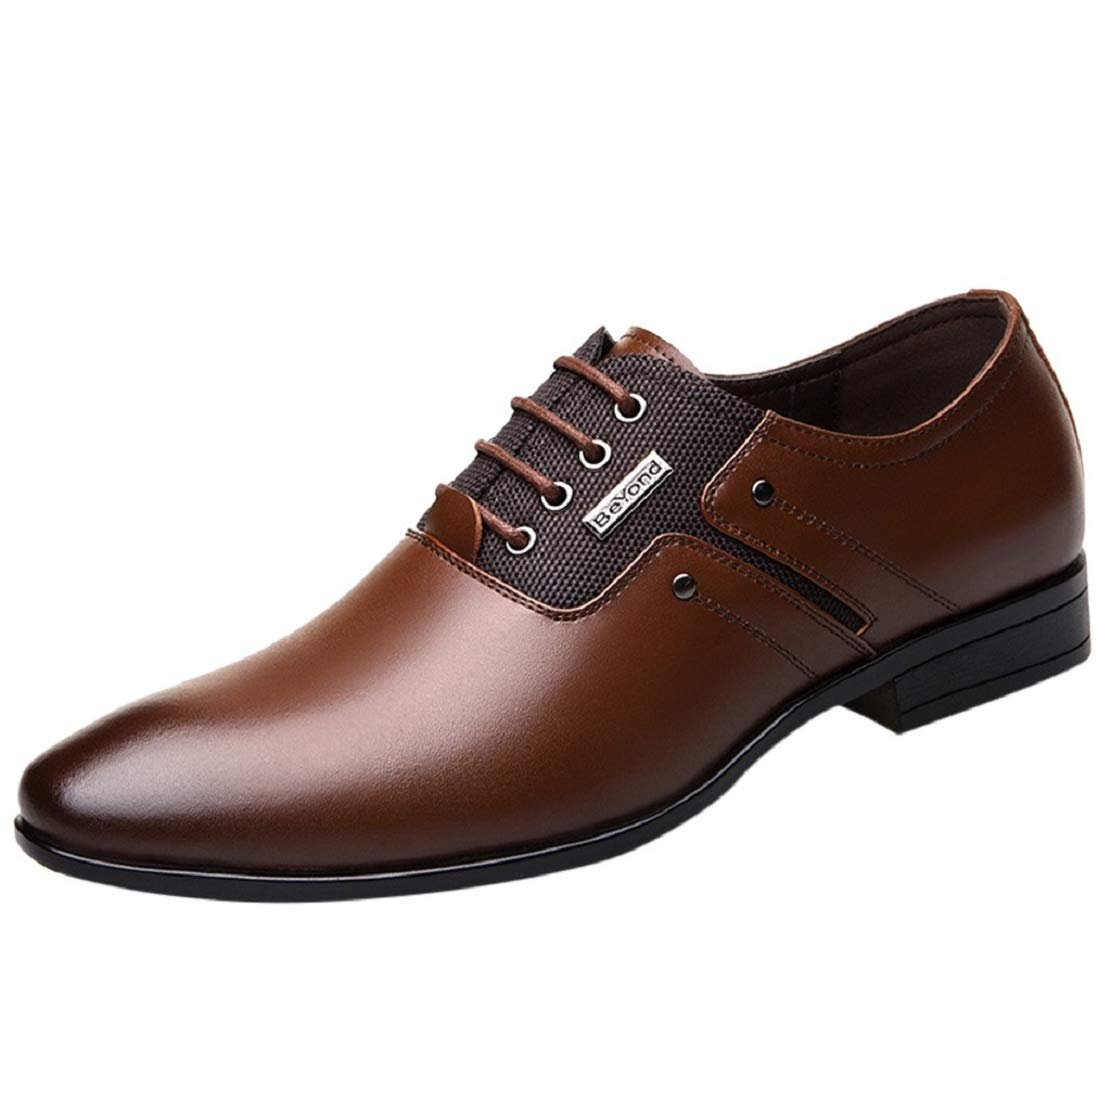 Men's Lace up Oxford Dress Shoes Pointed Toe Business Fashion Leather Comfortable Classic Shoes by Lowprofile Brown